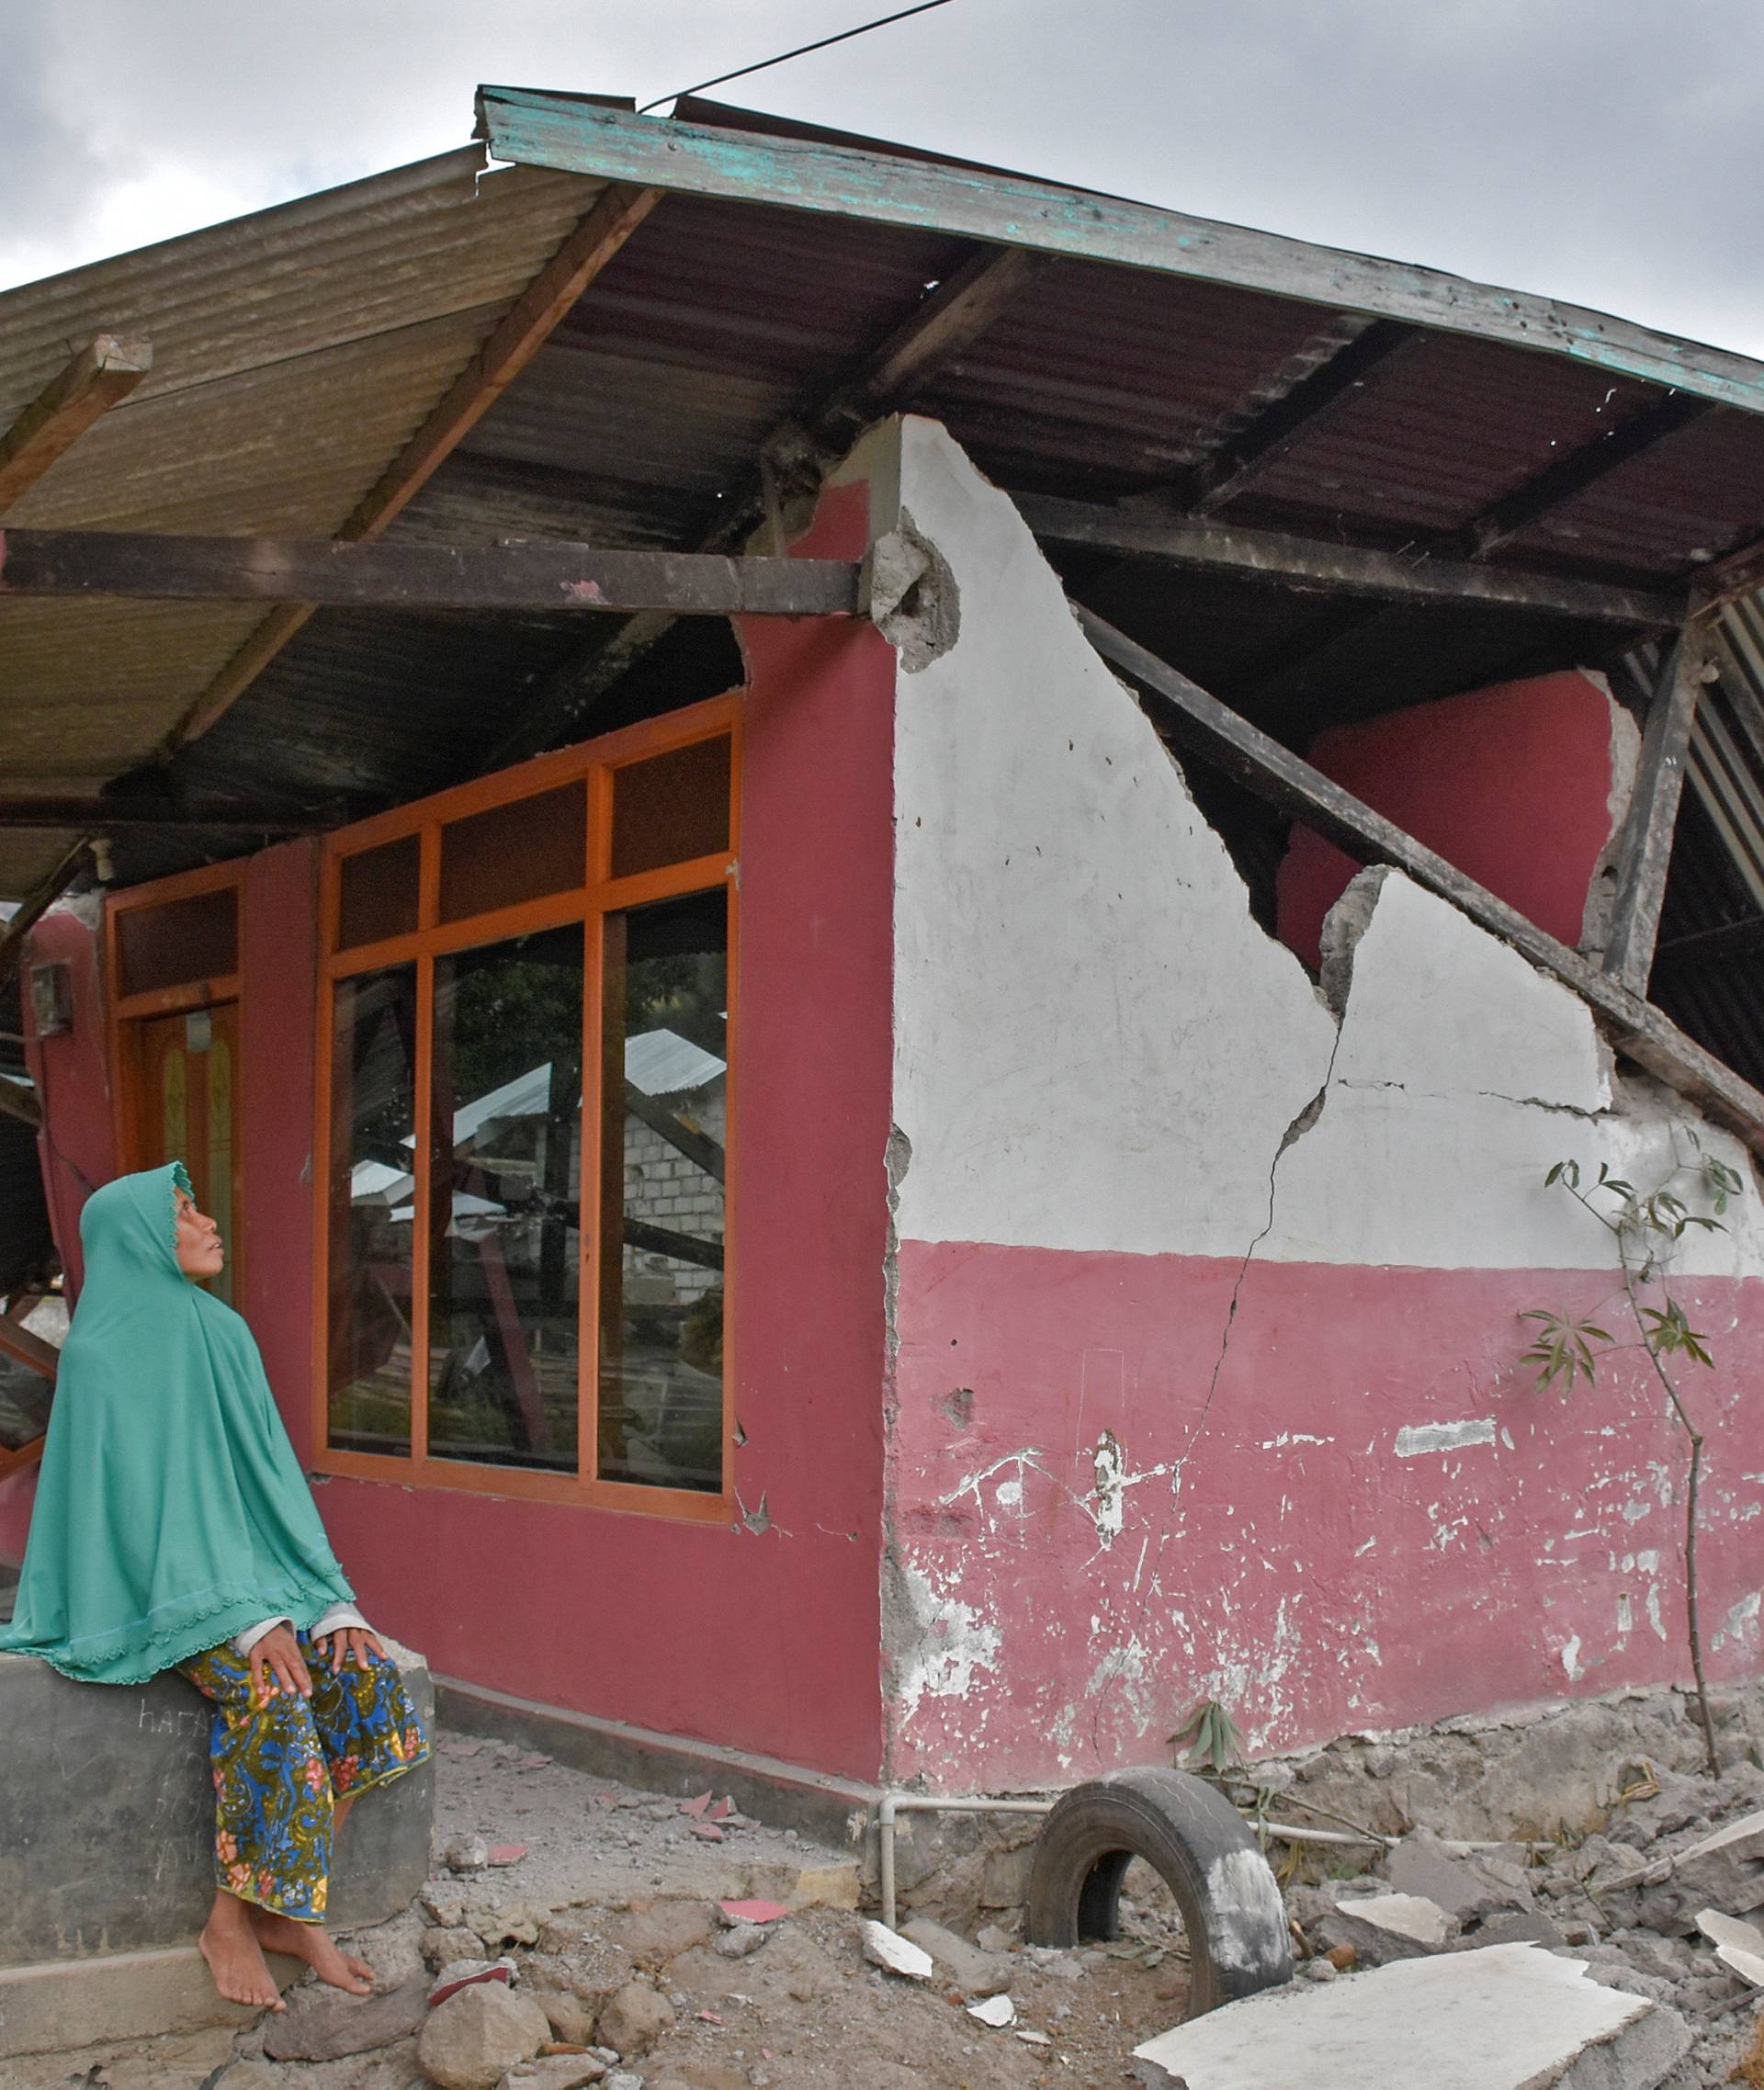 A villager sits at her damaged house after an earthquake hit Sembalun Bumbung village in Lombok Timur